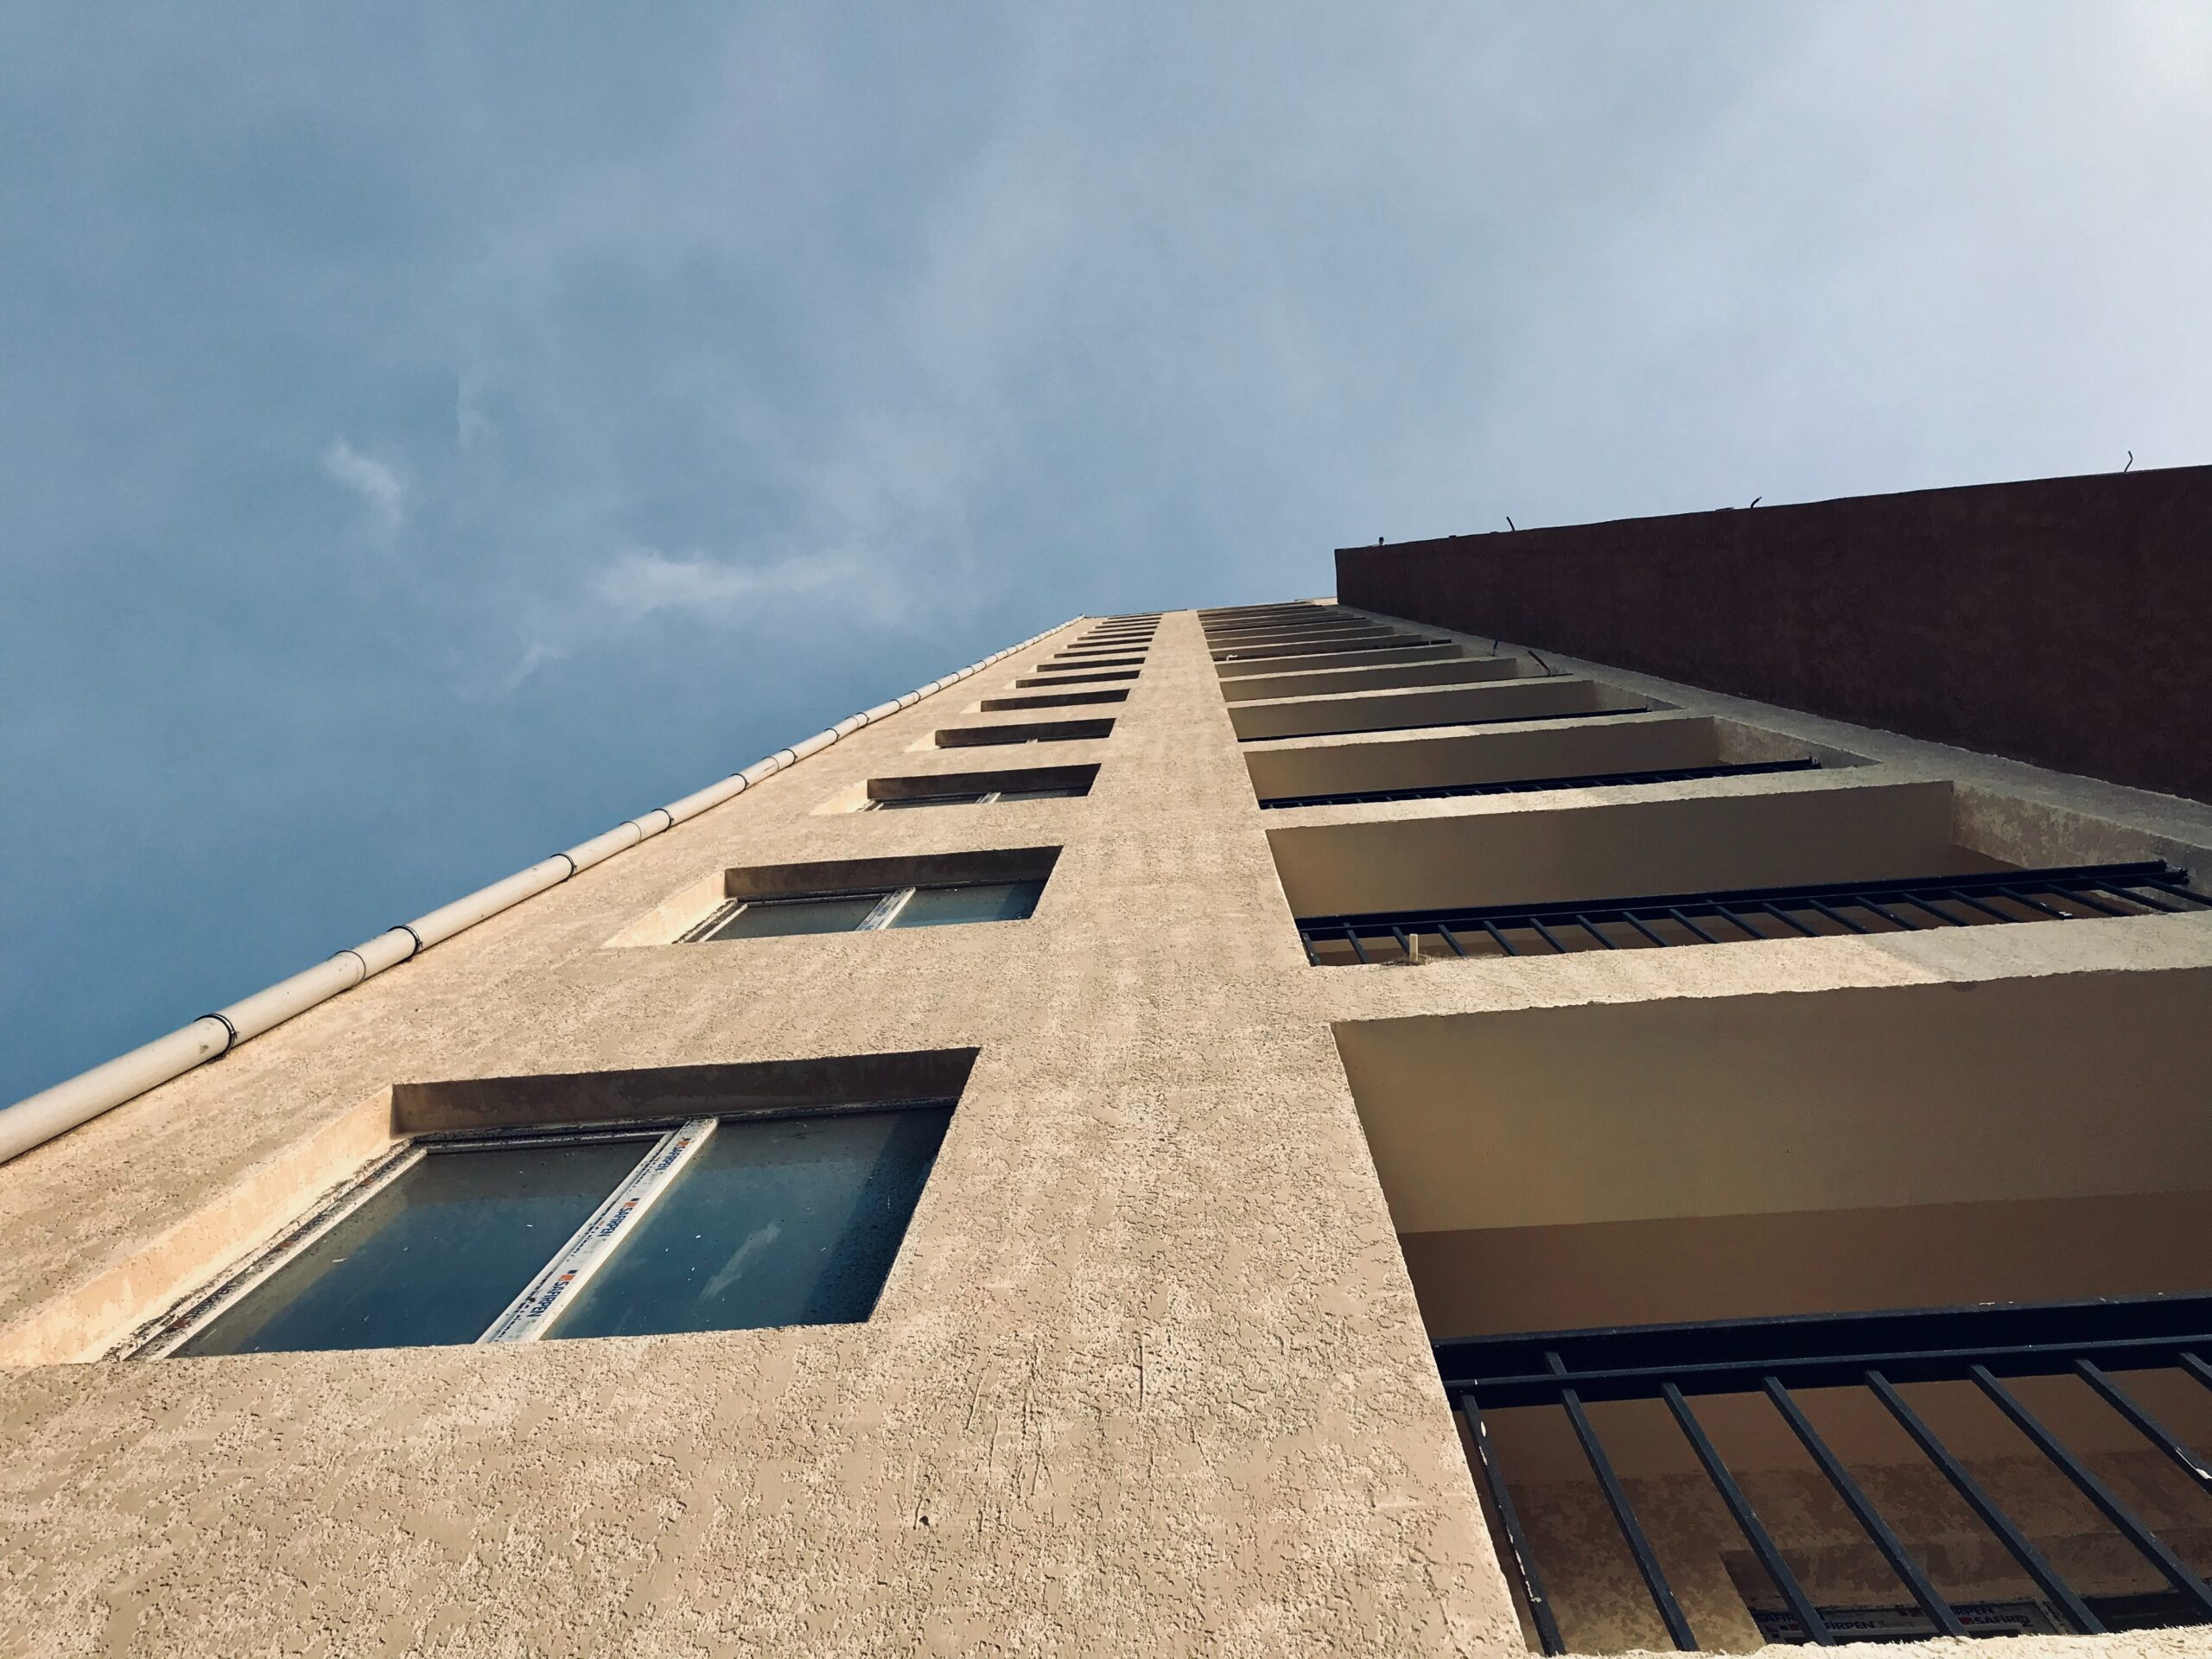 Shot of building upwards towards the sky from the ground